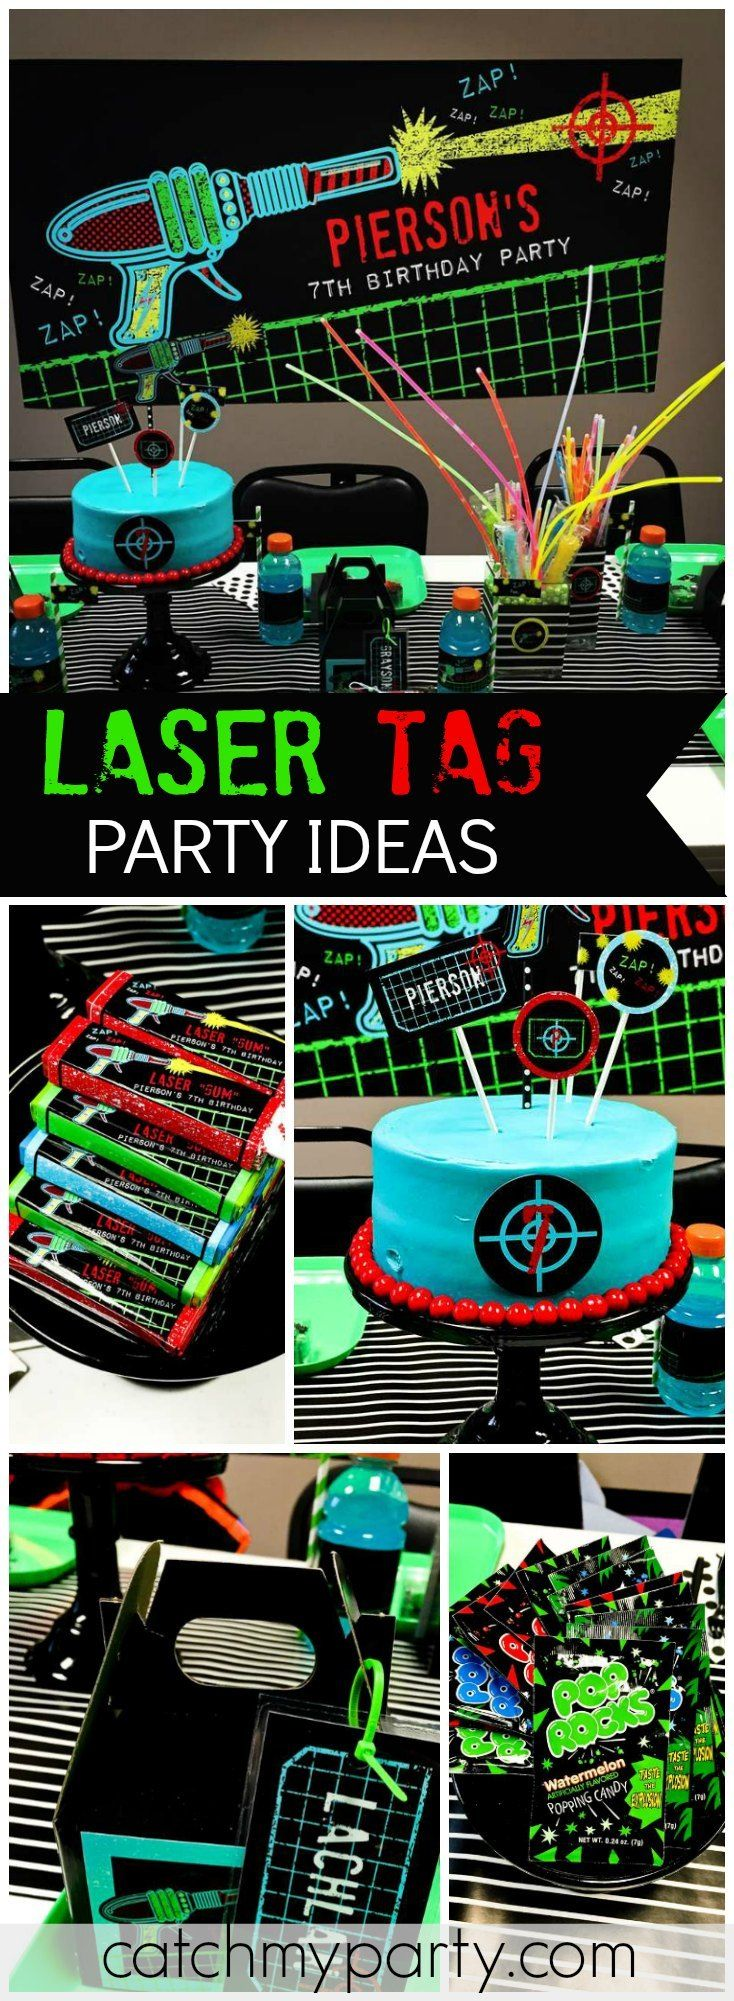 "Laser Tag / Birthday ""An Awesome Laser Tag Party"" 